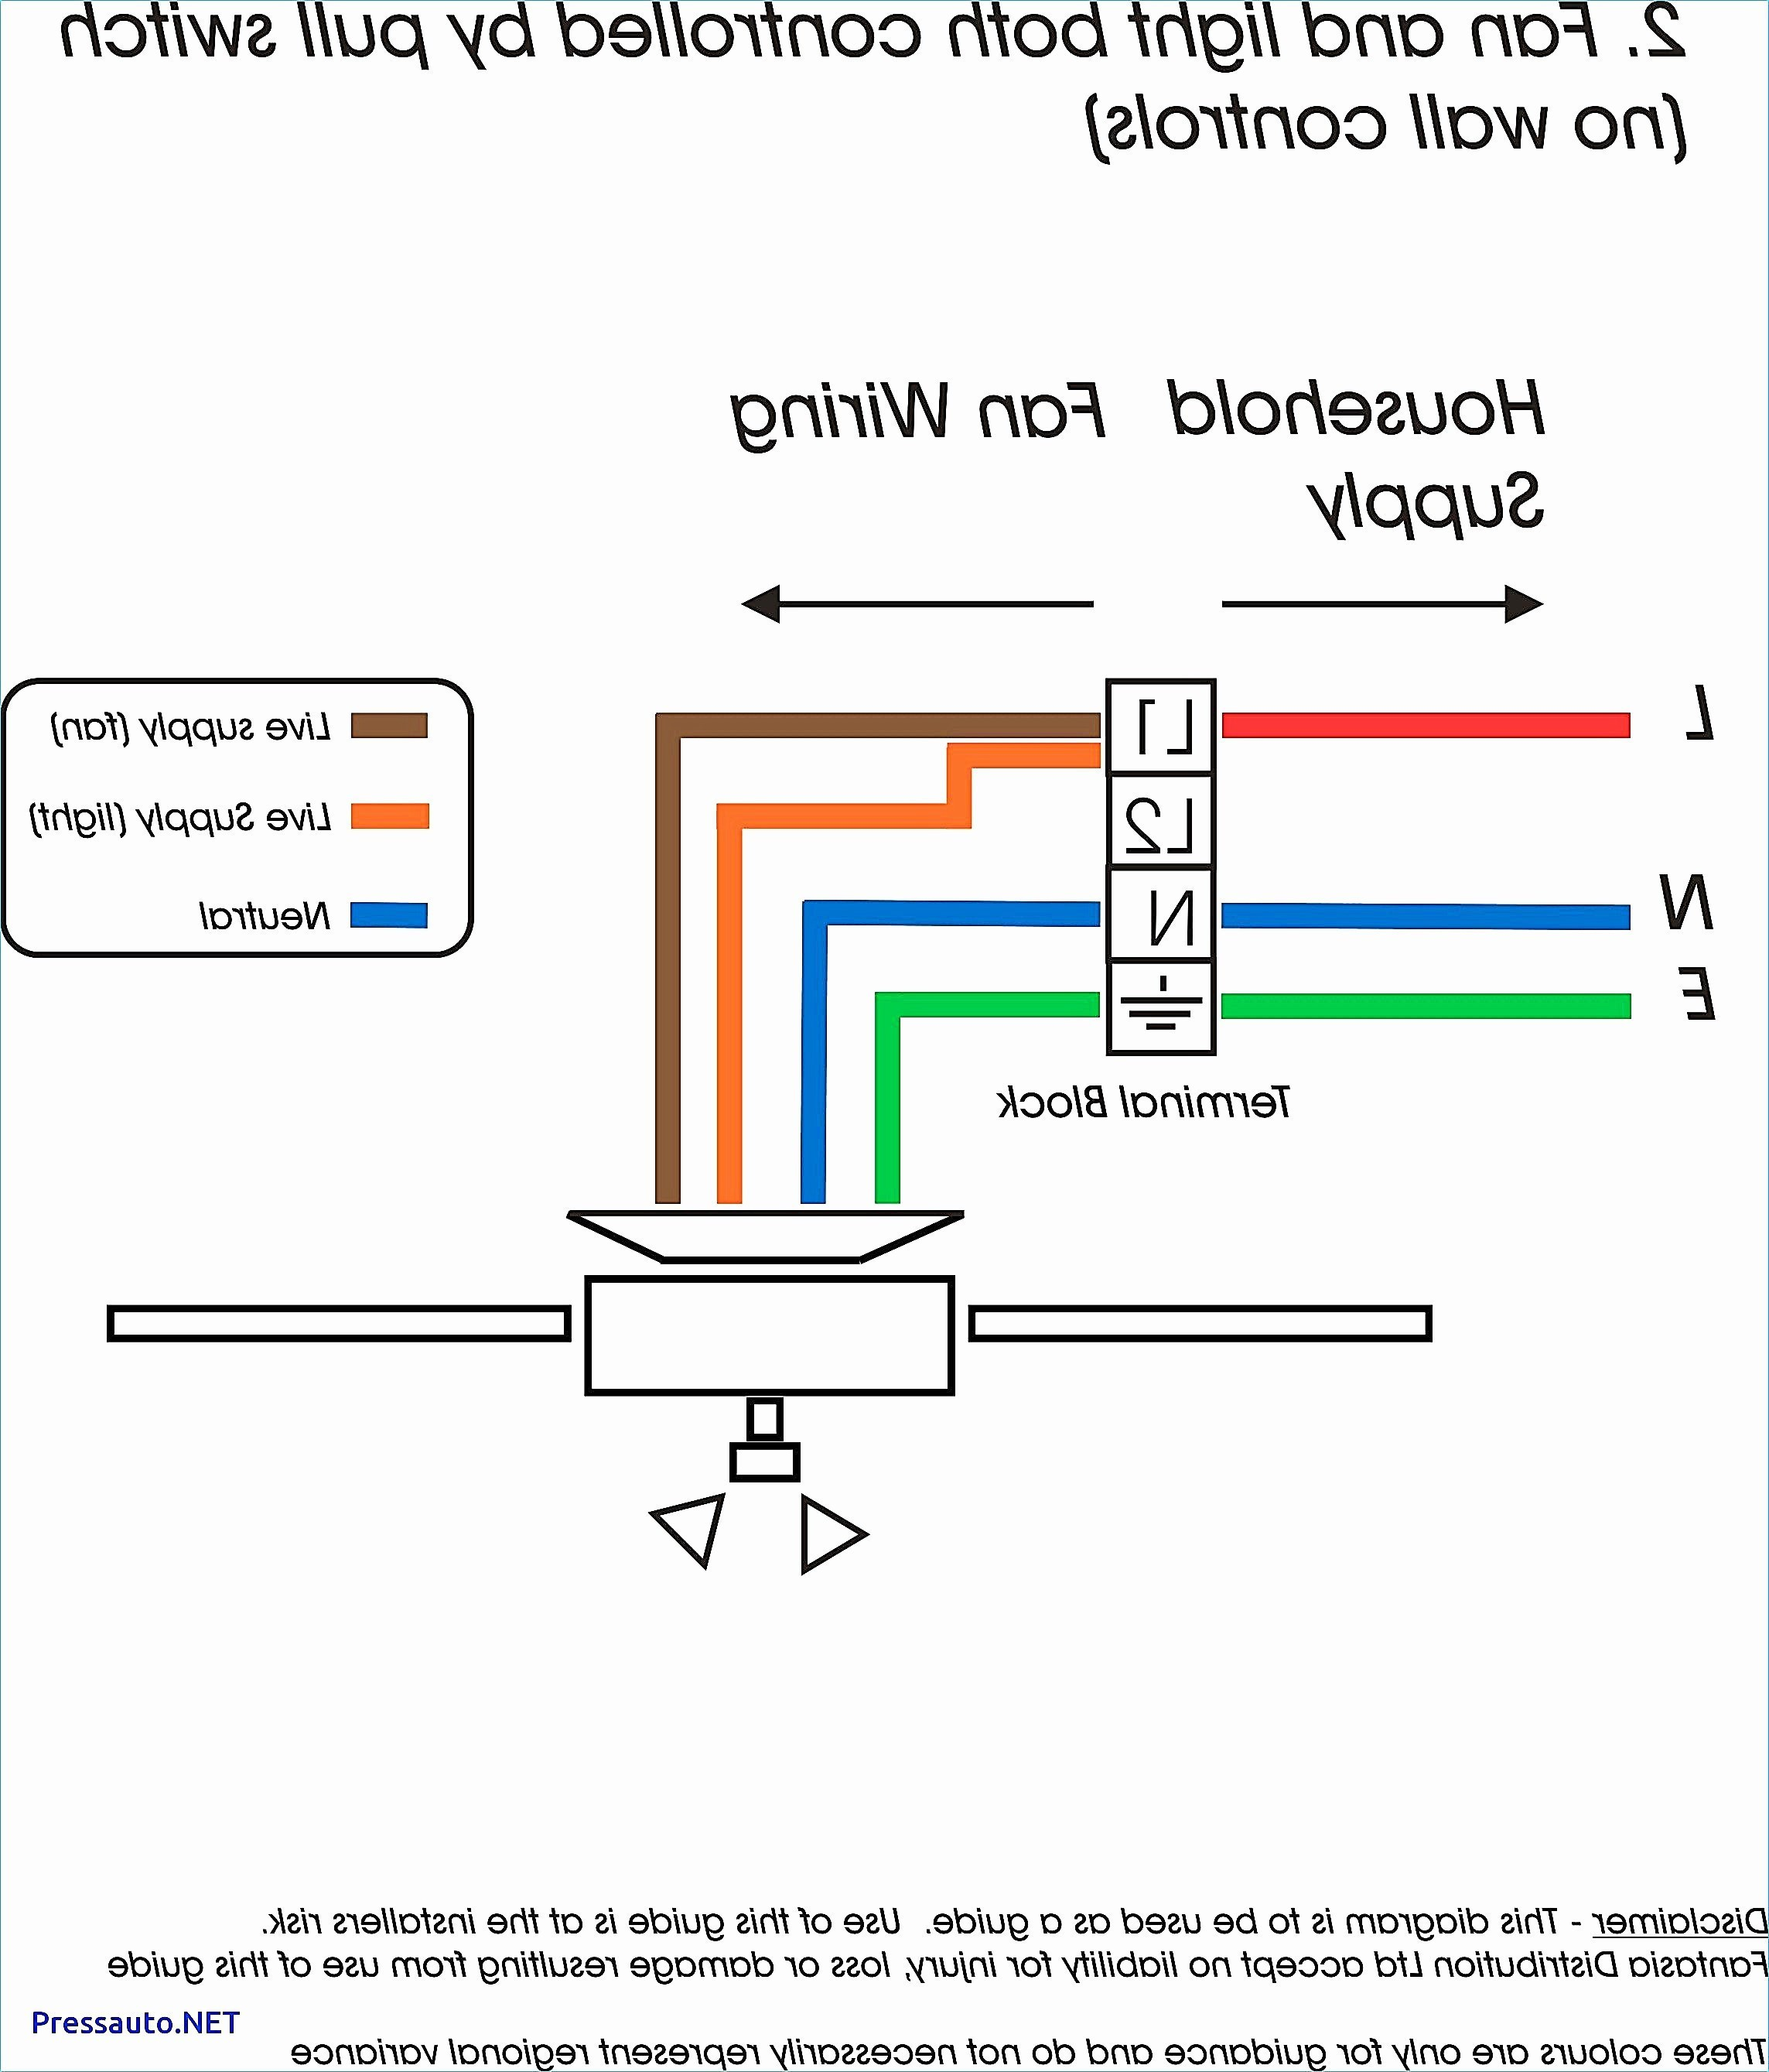 Cctv Balun Wiring Diagram Wiring Diagram for Security Camera Free About Wiring Diagram and Of Cctv Balun Wiring Diagram